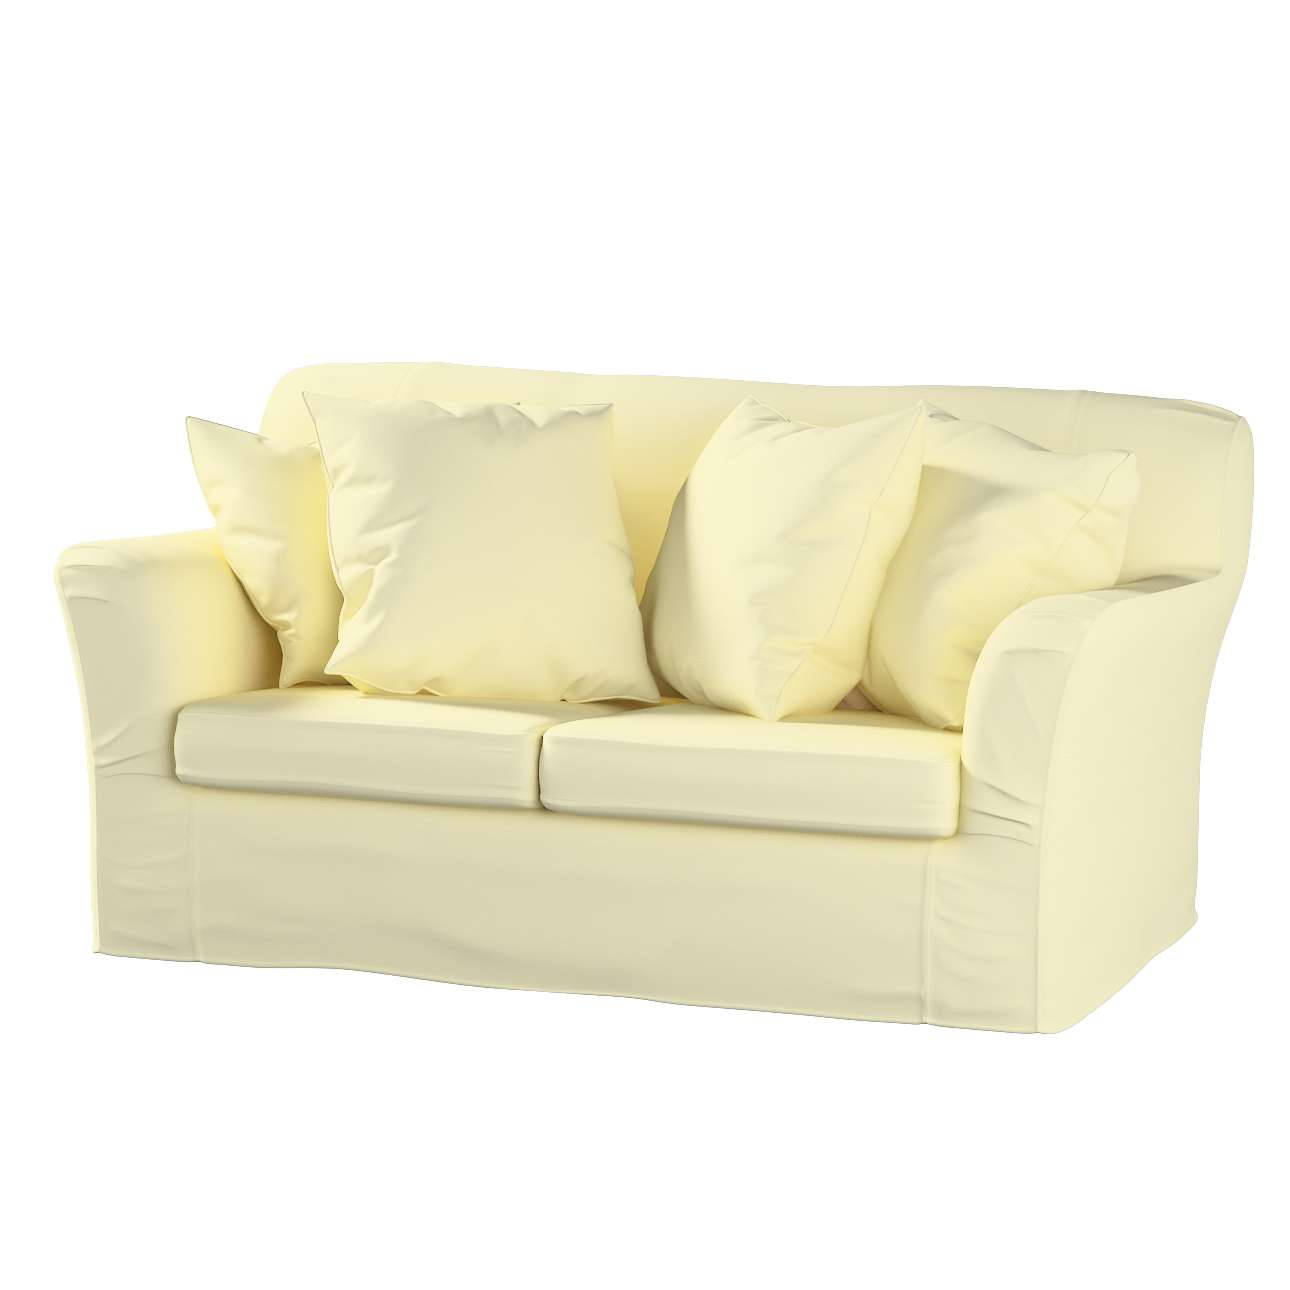 Tomelilla 2-seater sofa cover Tomelilla 2-seat sofa in collection Panama Cotton, fabric: 702-29